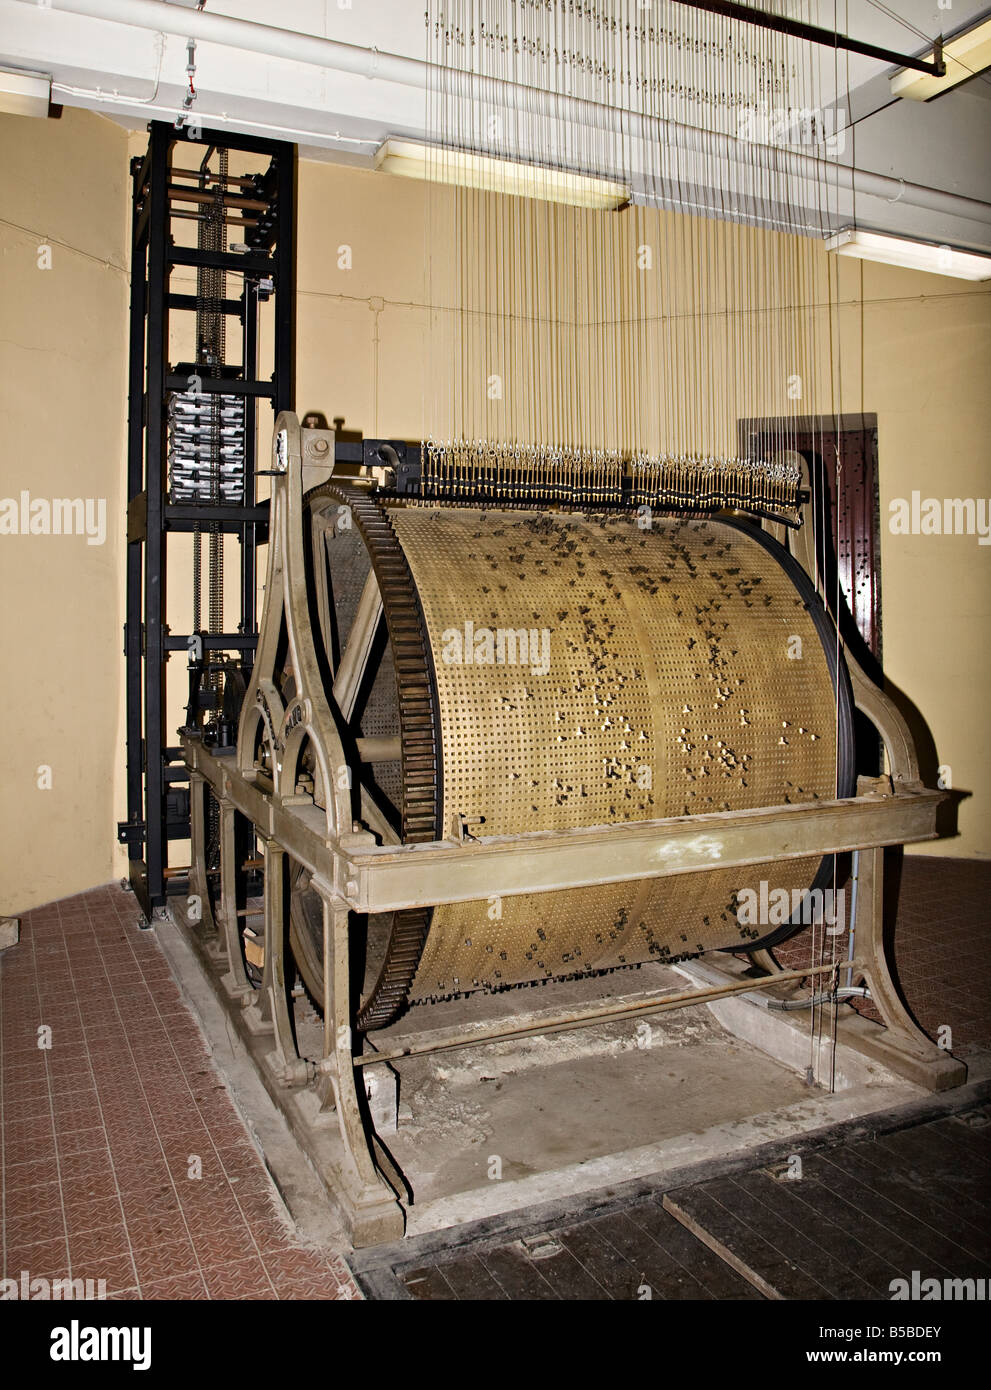 Part of controlling mechanism for the carillion in the Belfry Ghent Belgium - Stock Image